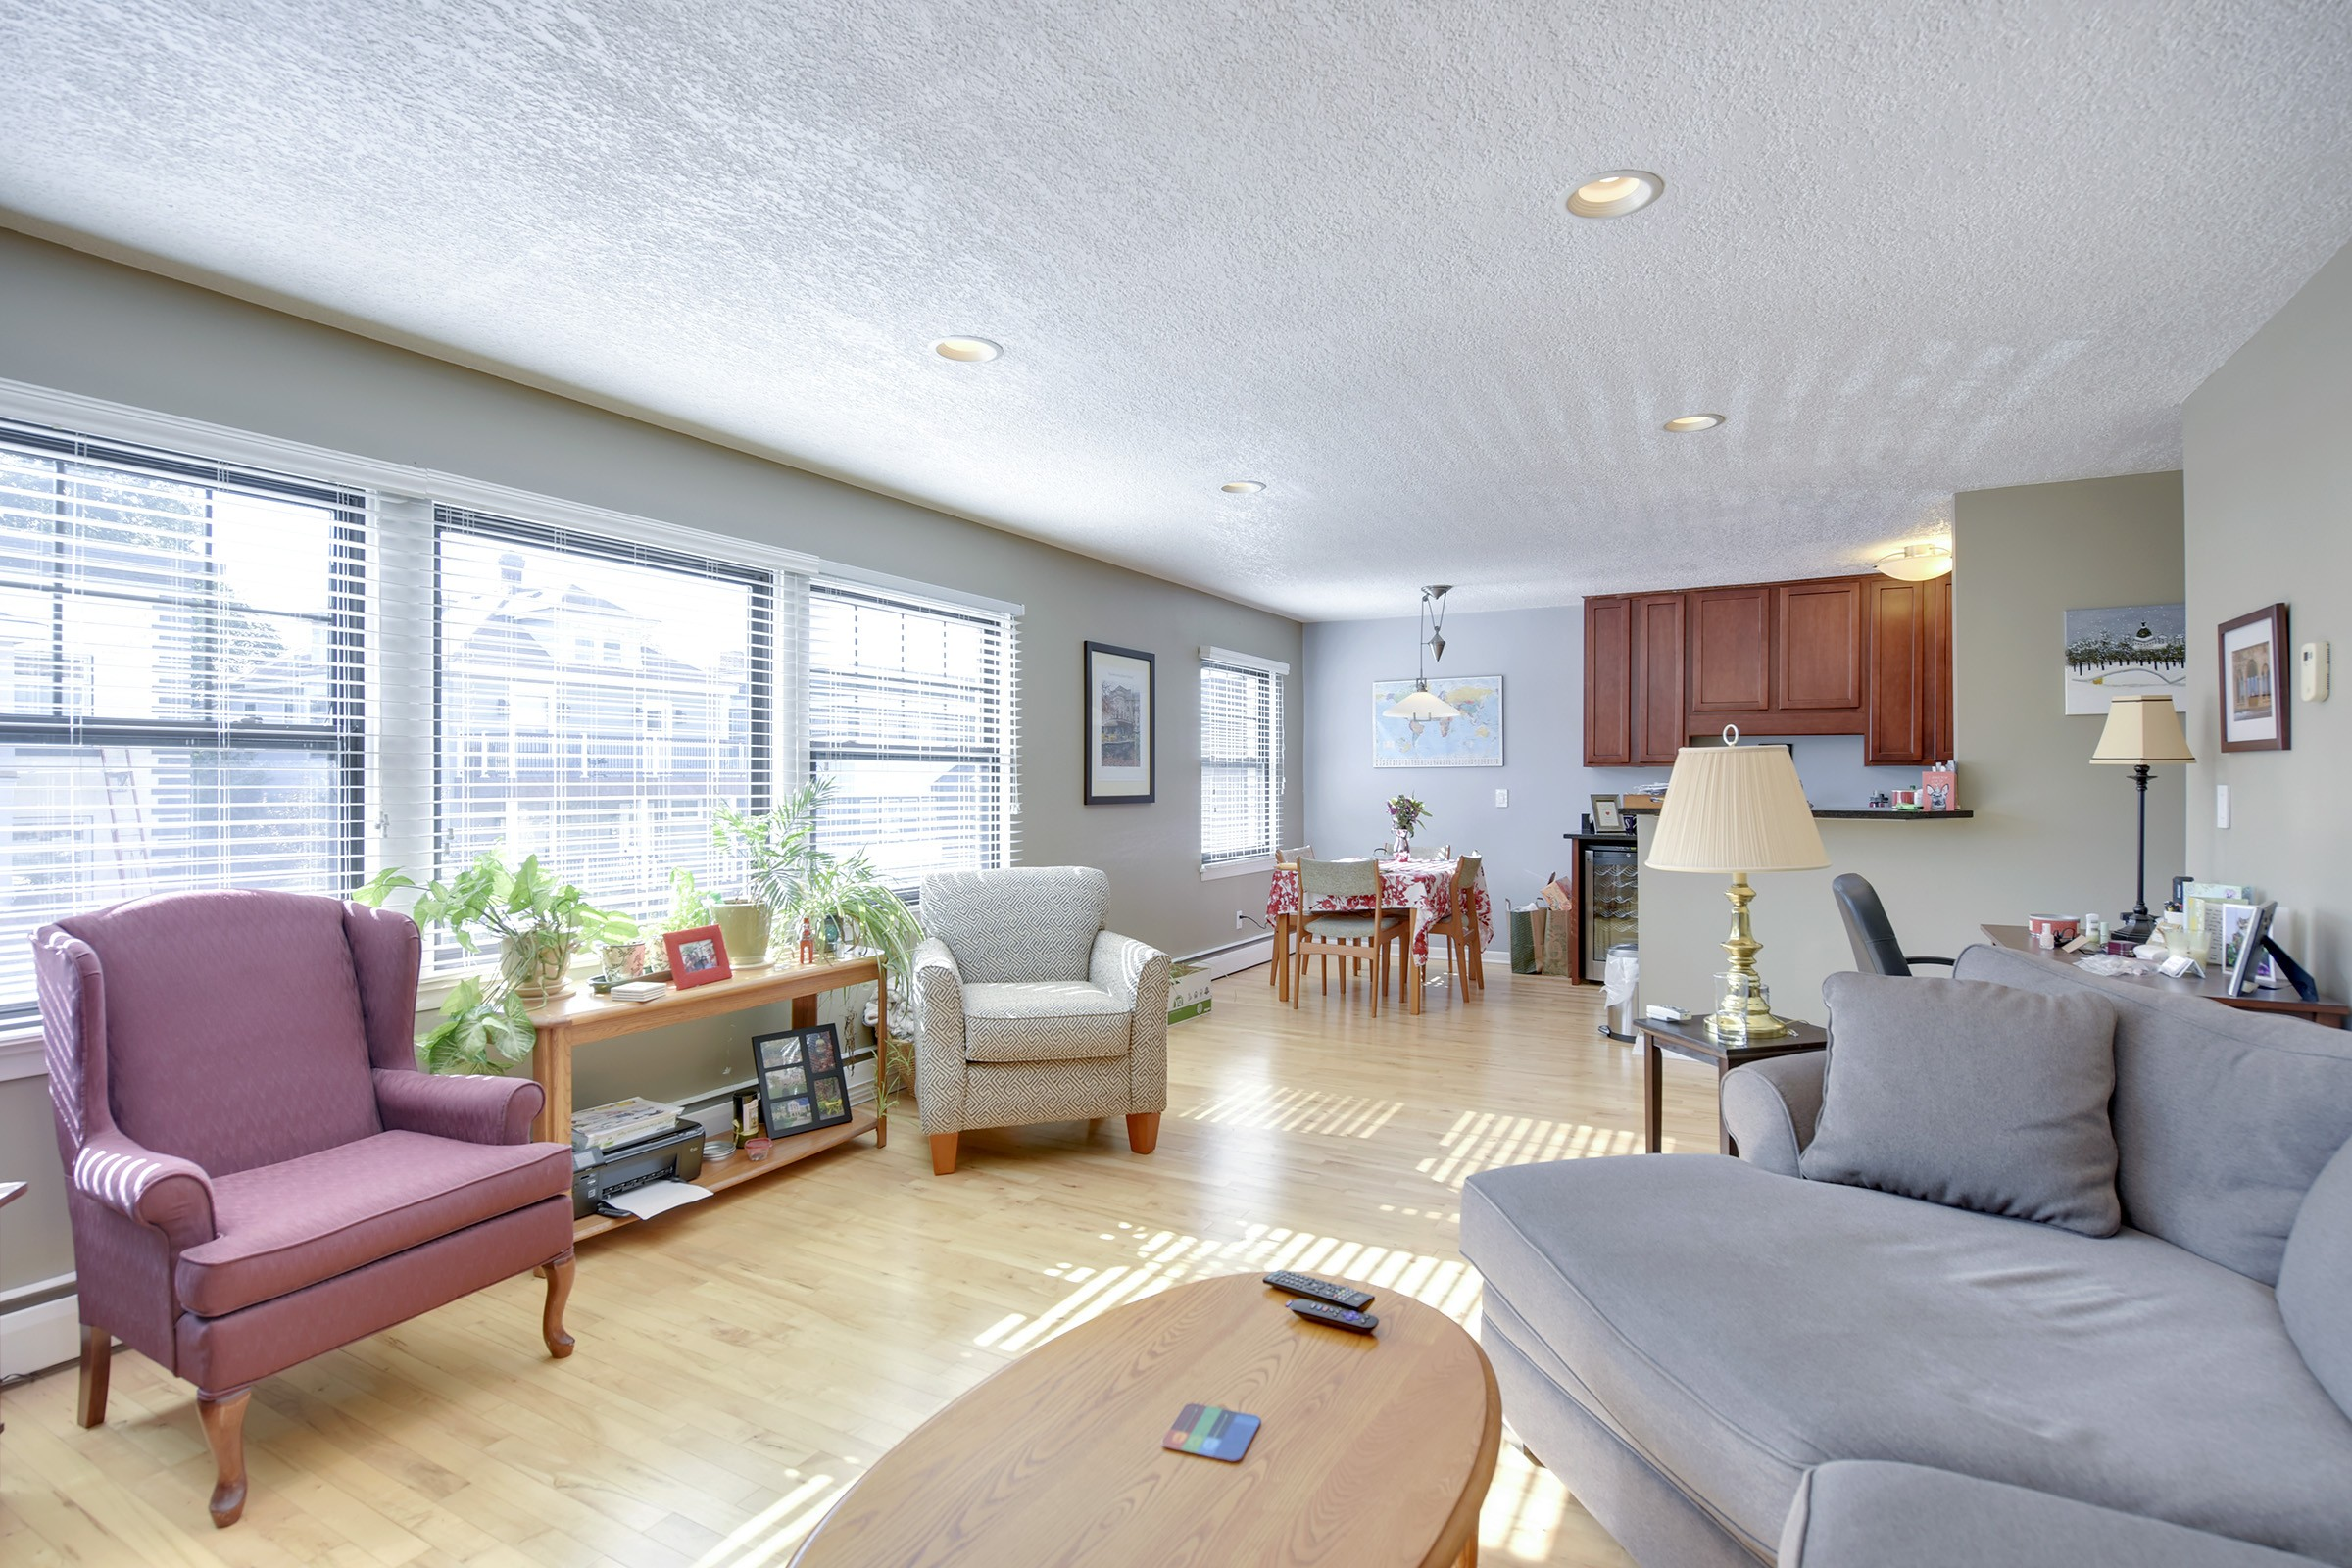 Condominium for Sale at 3019 Bryant Ave S #106 3019 Bryant Avenue S #106 Minneapolis, Minnesota, 55408 United States